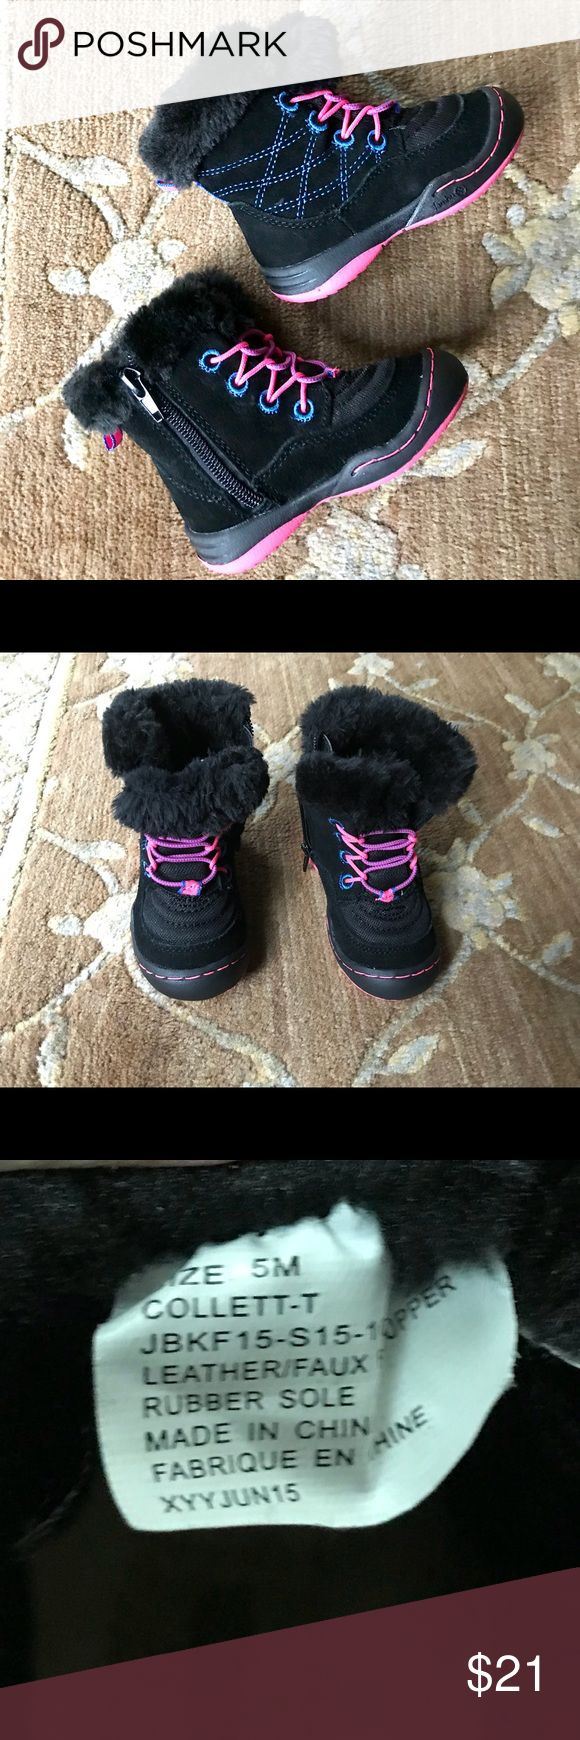 Kids snow boots Kids (toddler) waterproof snow boots. Like new, worn once last year and has grown out of it. Great quality! Rubber sole, waterproof lining, insulated for warmth. Jambu Shoes Rain & Snow Boots